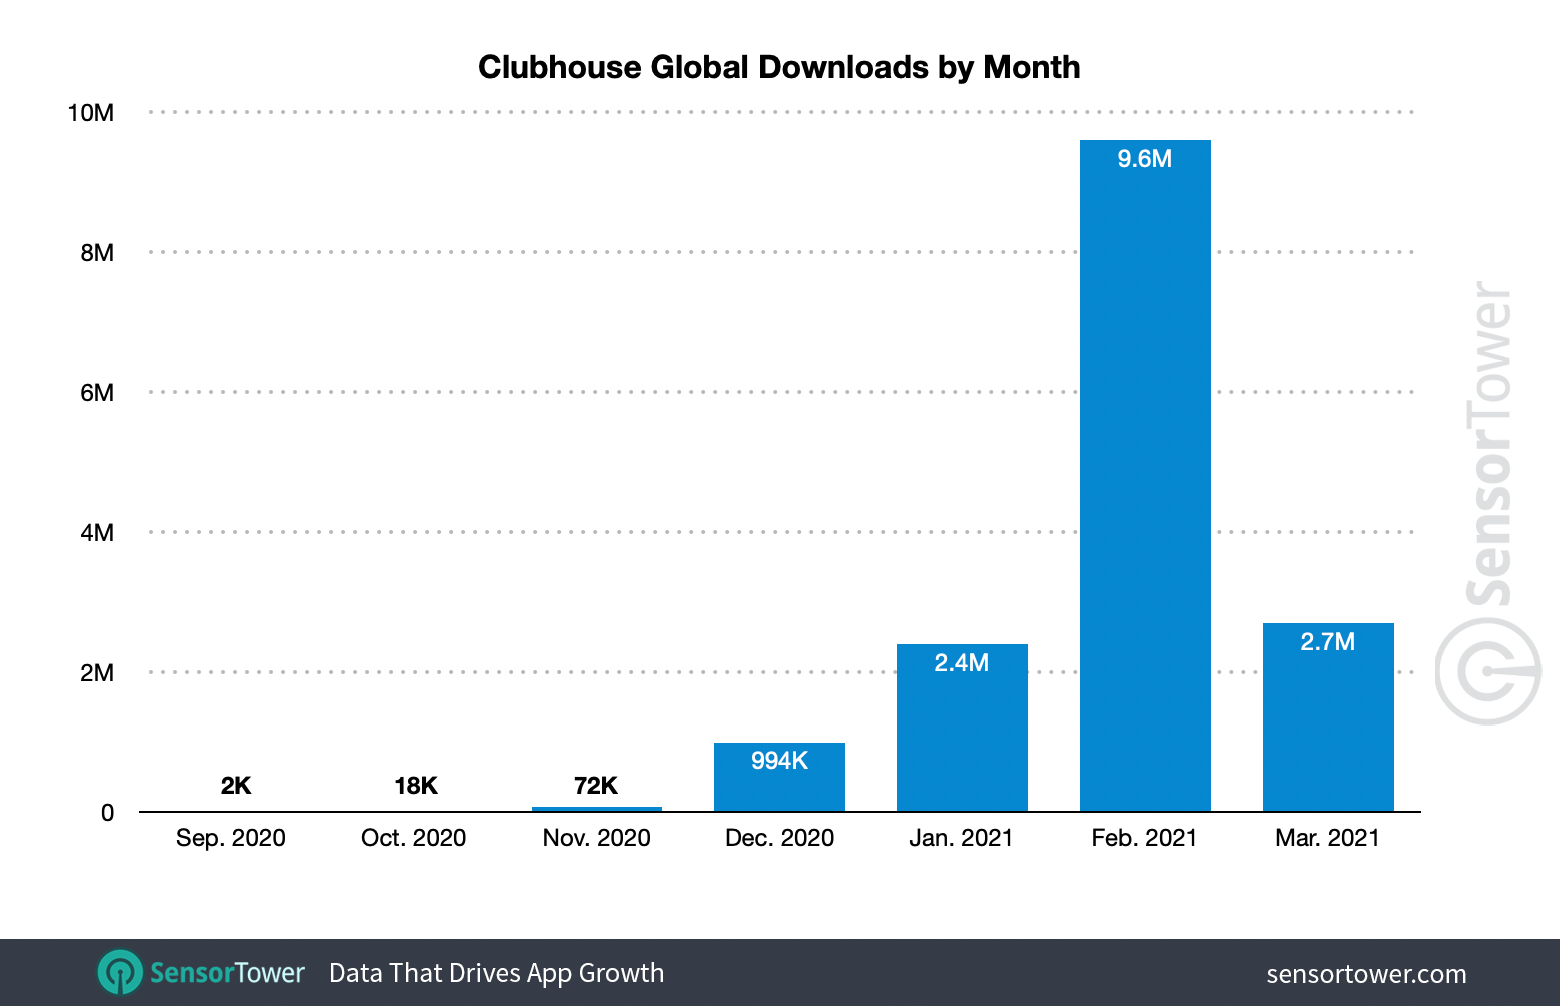 Clubhouse's monthly global installs starting in September 2020.